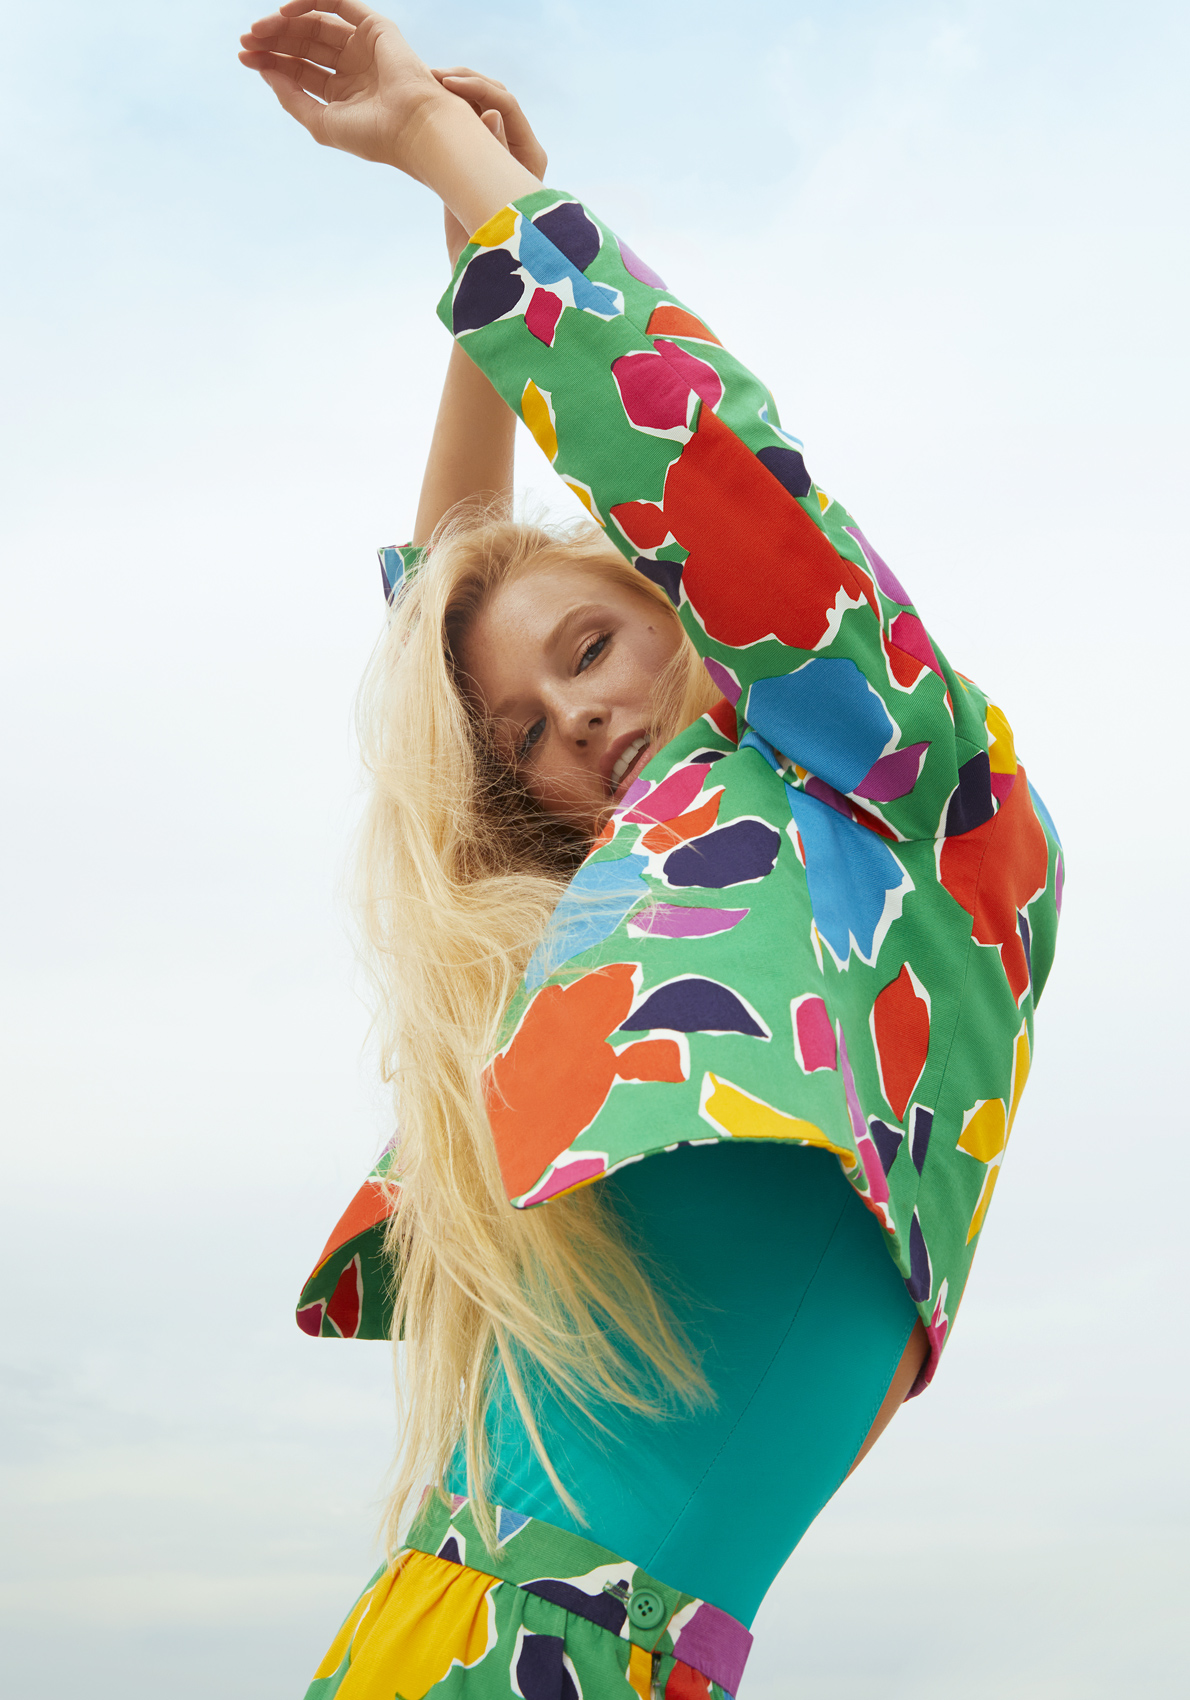 Girl with blond wearing a green suit at the beach. Kim Genevieve Los Angeles Portrait Photographer